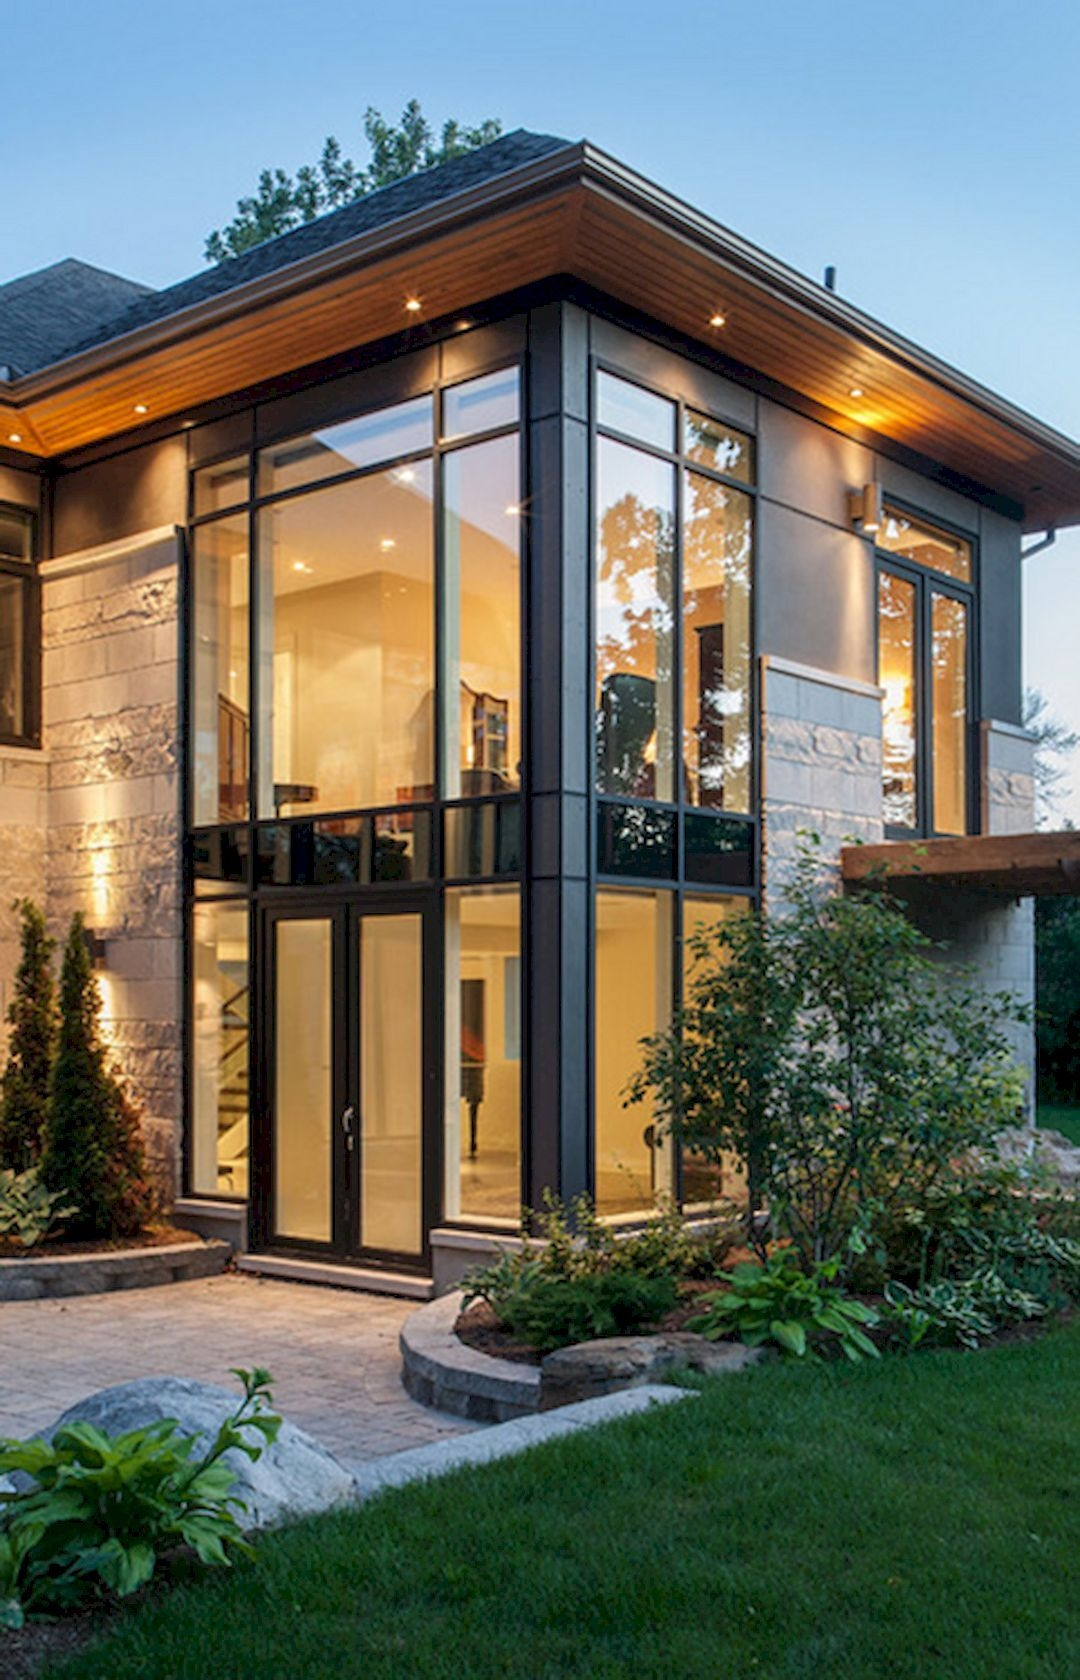 24e99cab0dda afc98eec3b on Modern House Designs Pictures Gallery id=1005779